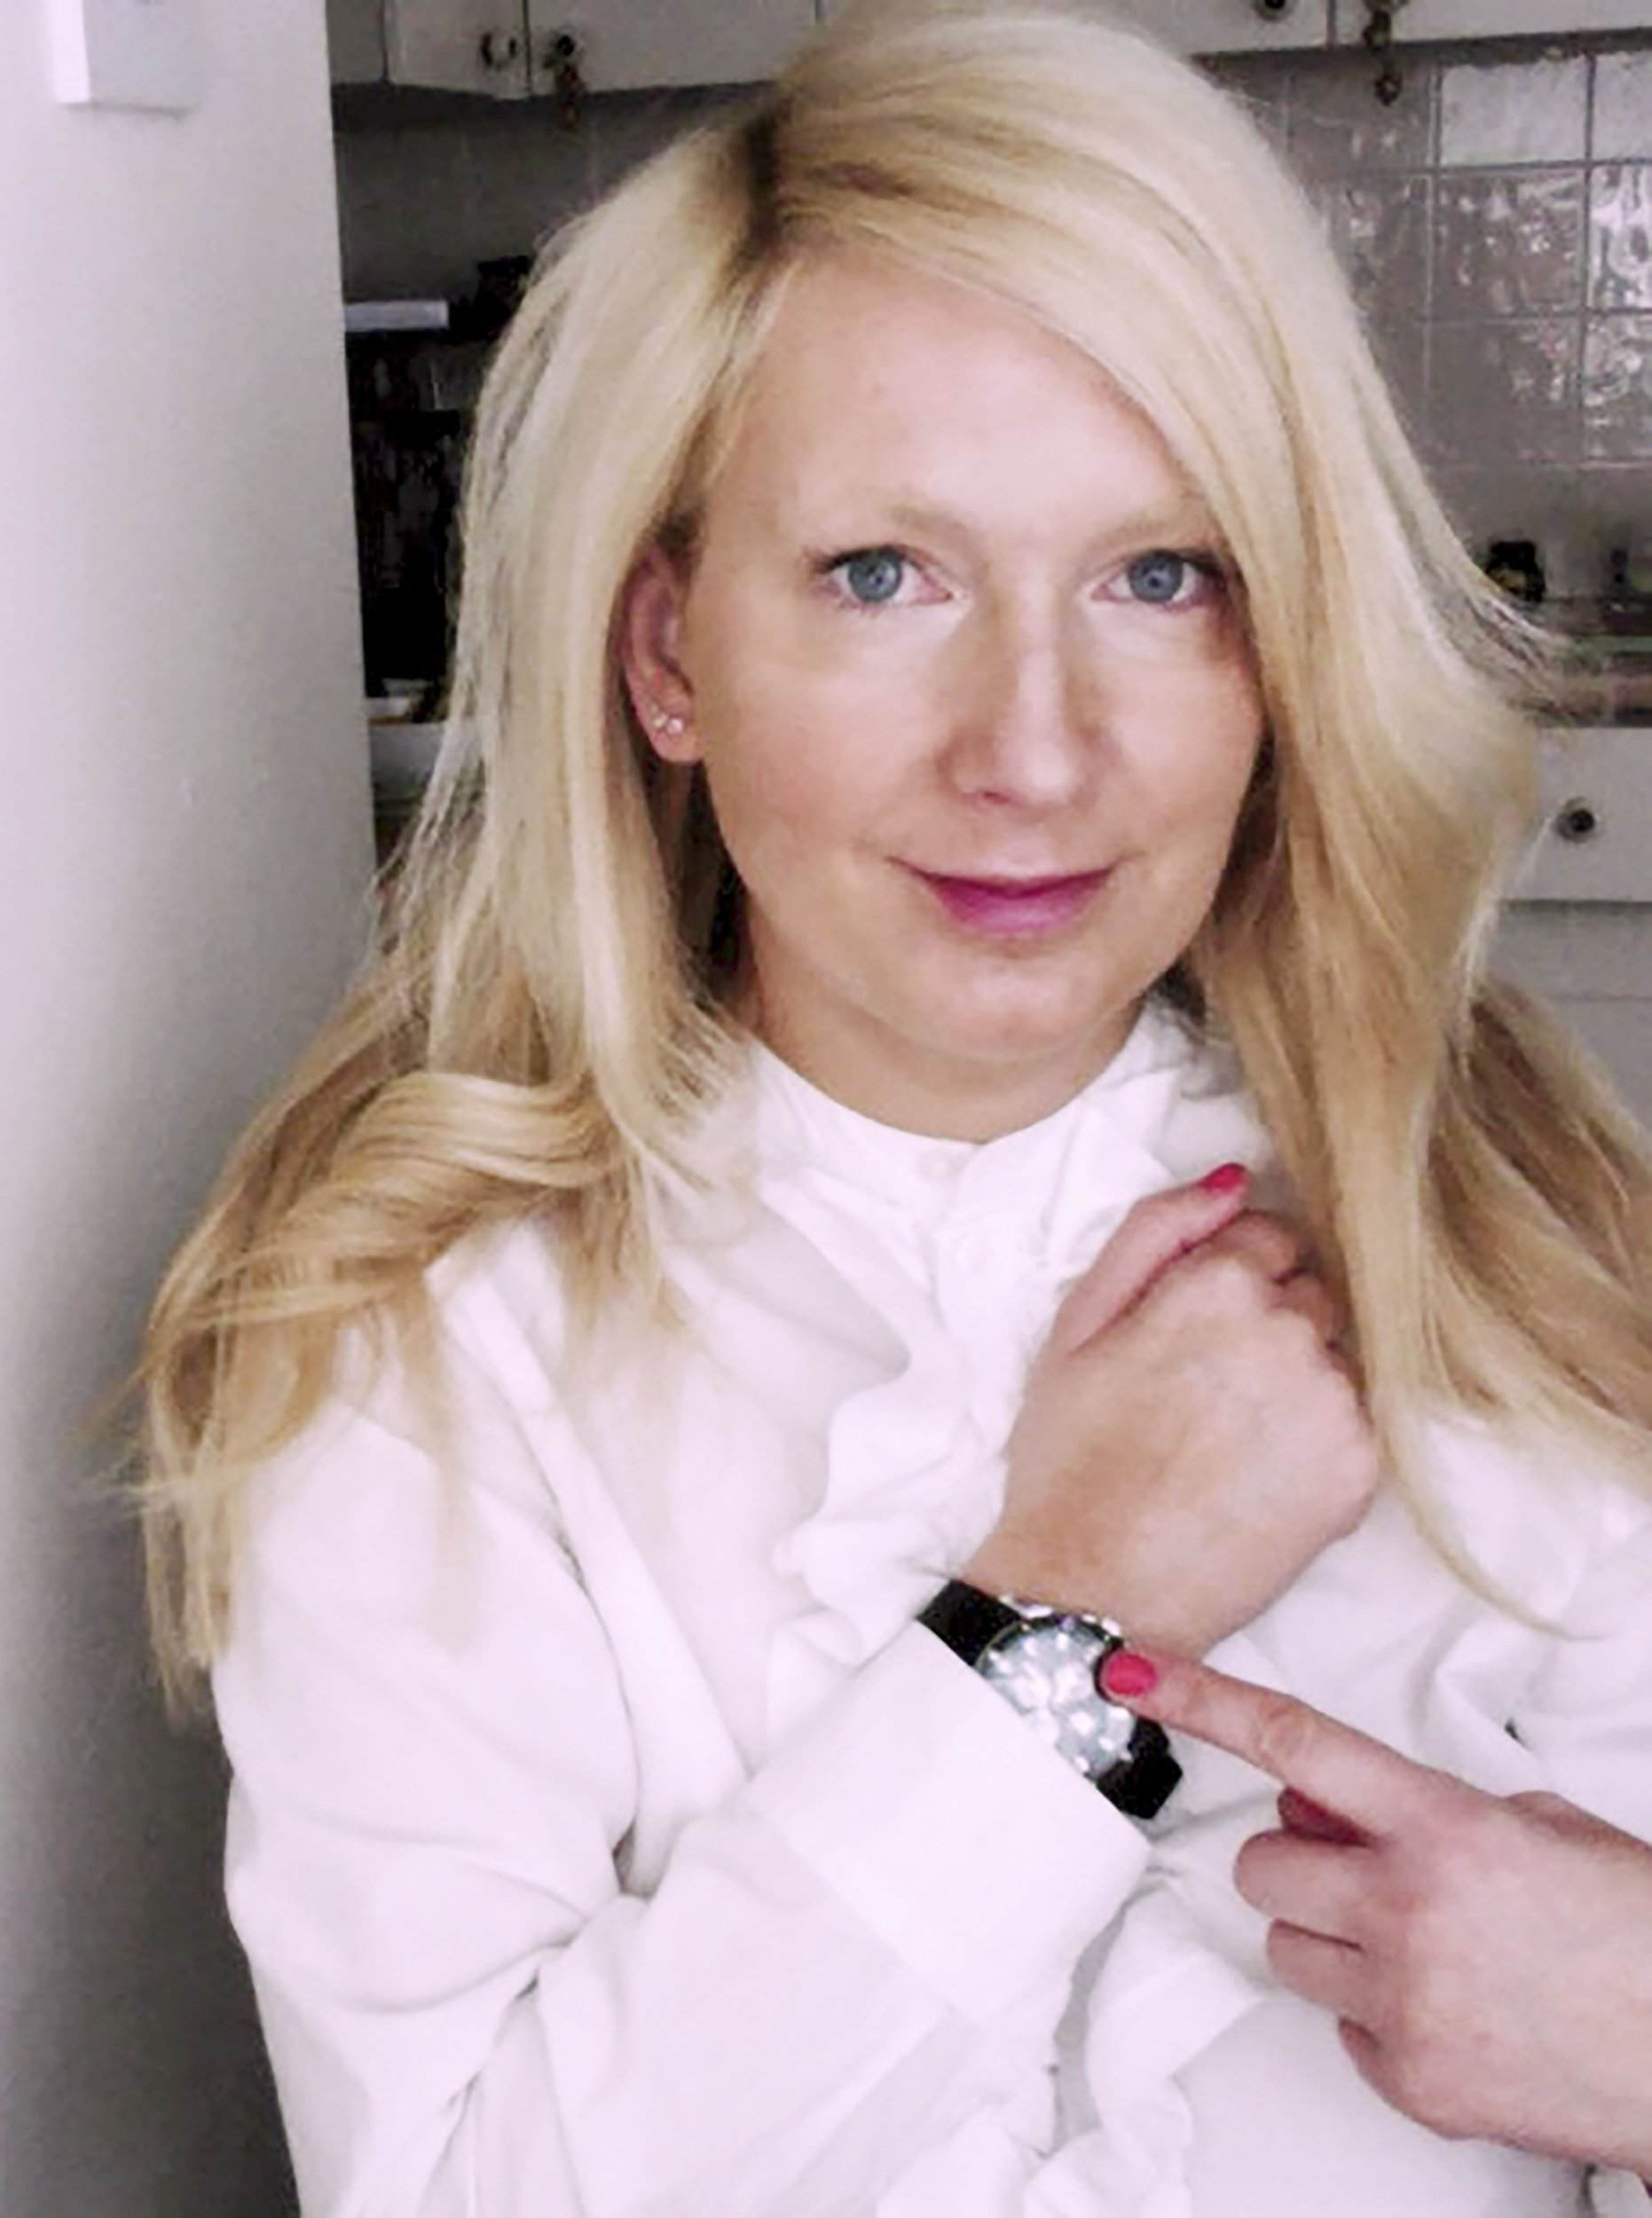 PIC FROM MERCURY PRESS (PICTURED: LUCY BROWN, 38 WEARING HER DATE'S Ä20 WATCH ) A ëcareer girlí was left stunned after ditching a man following just one date ñ when he replied with is bank details and demanded she refund him the cash he spent on drinks. Lucy Brown, 38, from London, was only on her second date after joining the dating apps Plenty of Fish and Tinder when her three-year long relationship ended just before Christmas. Despite the date at a Clapham pub going well and Lucy thinking he was ënormal and sweetí, she texted him to let him know she wasnít interested in meeting up a second time. However she was left in disbelief when the man replied to say he was ëdevastatedí and asked for a ëcontribution for the drinks I spent on youí ñ finishing the message with his account number and sort code. After she had ended up taking his watch home by mistake, the mystery man even informed her it was worth Ä20 but told he not to post it back because 'it'd be too painful to receive the watch in the post and remind me of you'. Lucyís hilarious reply informed the man that she had paid him his £42.50 back and donated the same amount again to a donkey sanctuary, claiming she had never laughed so hard. SEE MERCURY COPY